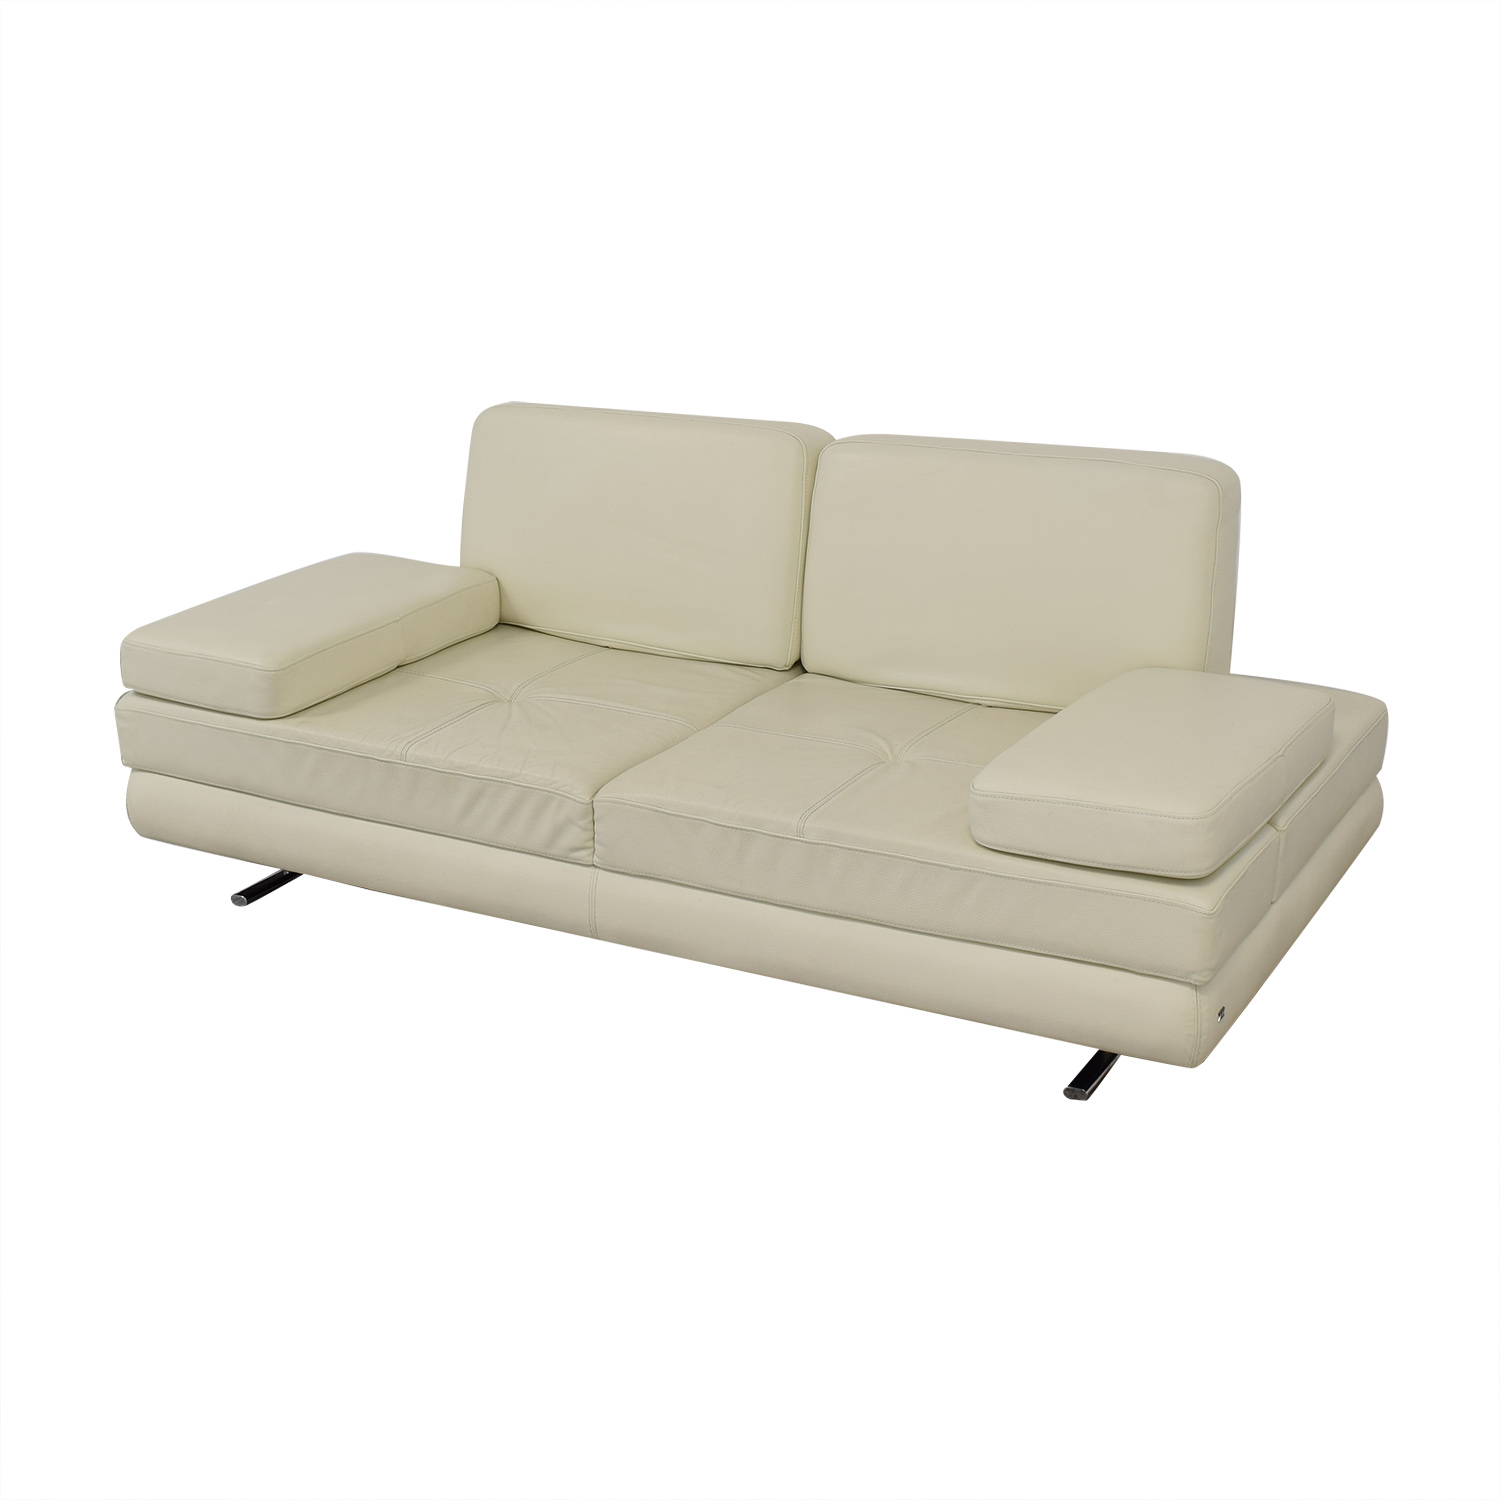 84% OFF - Lazzoni Lazzoni Mony White Full Size Sleeper Sofa / Sofas